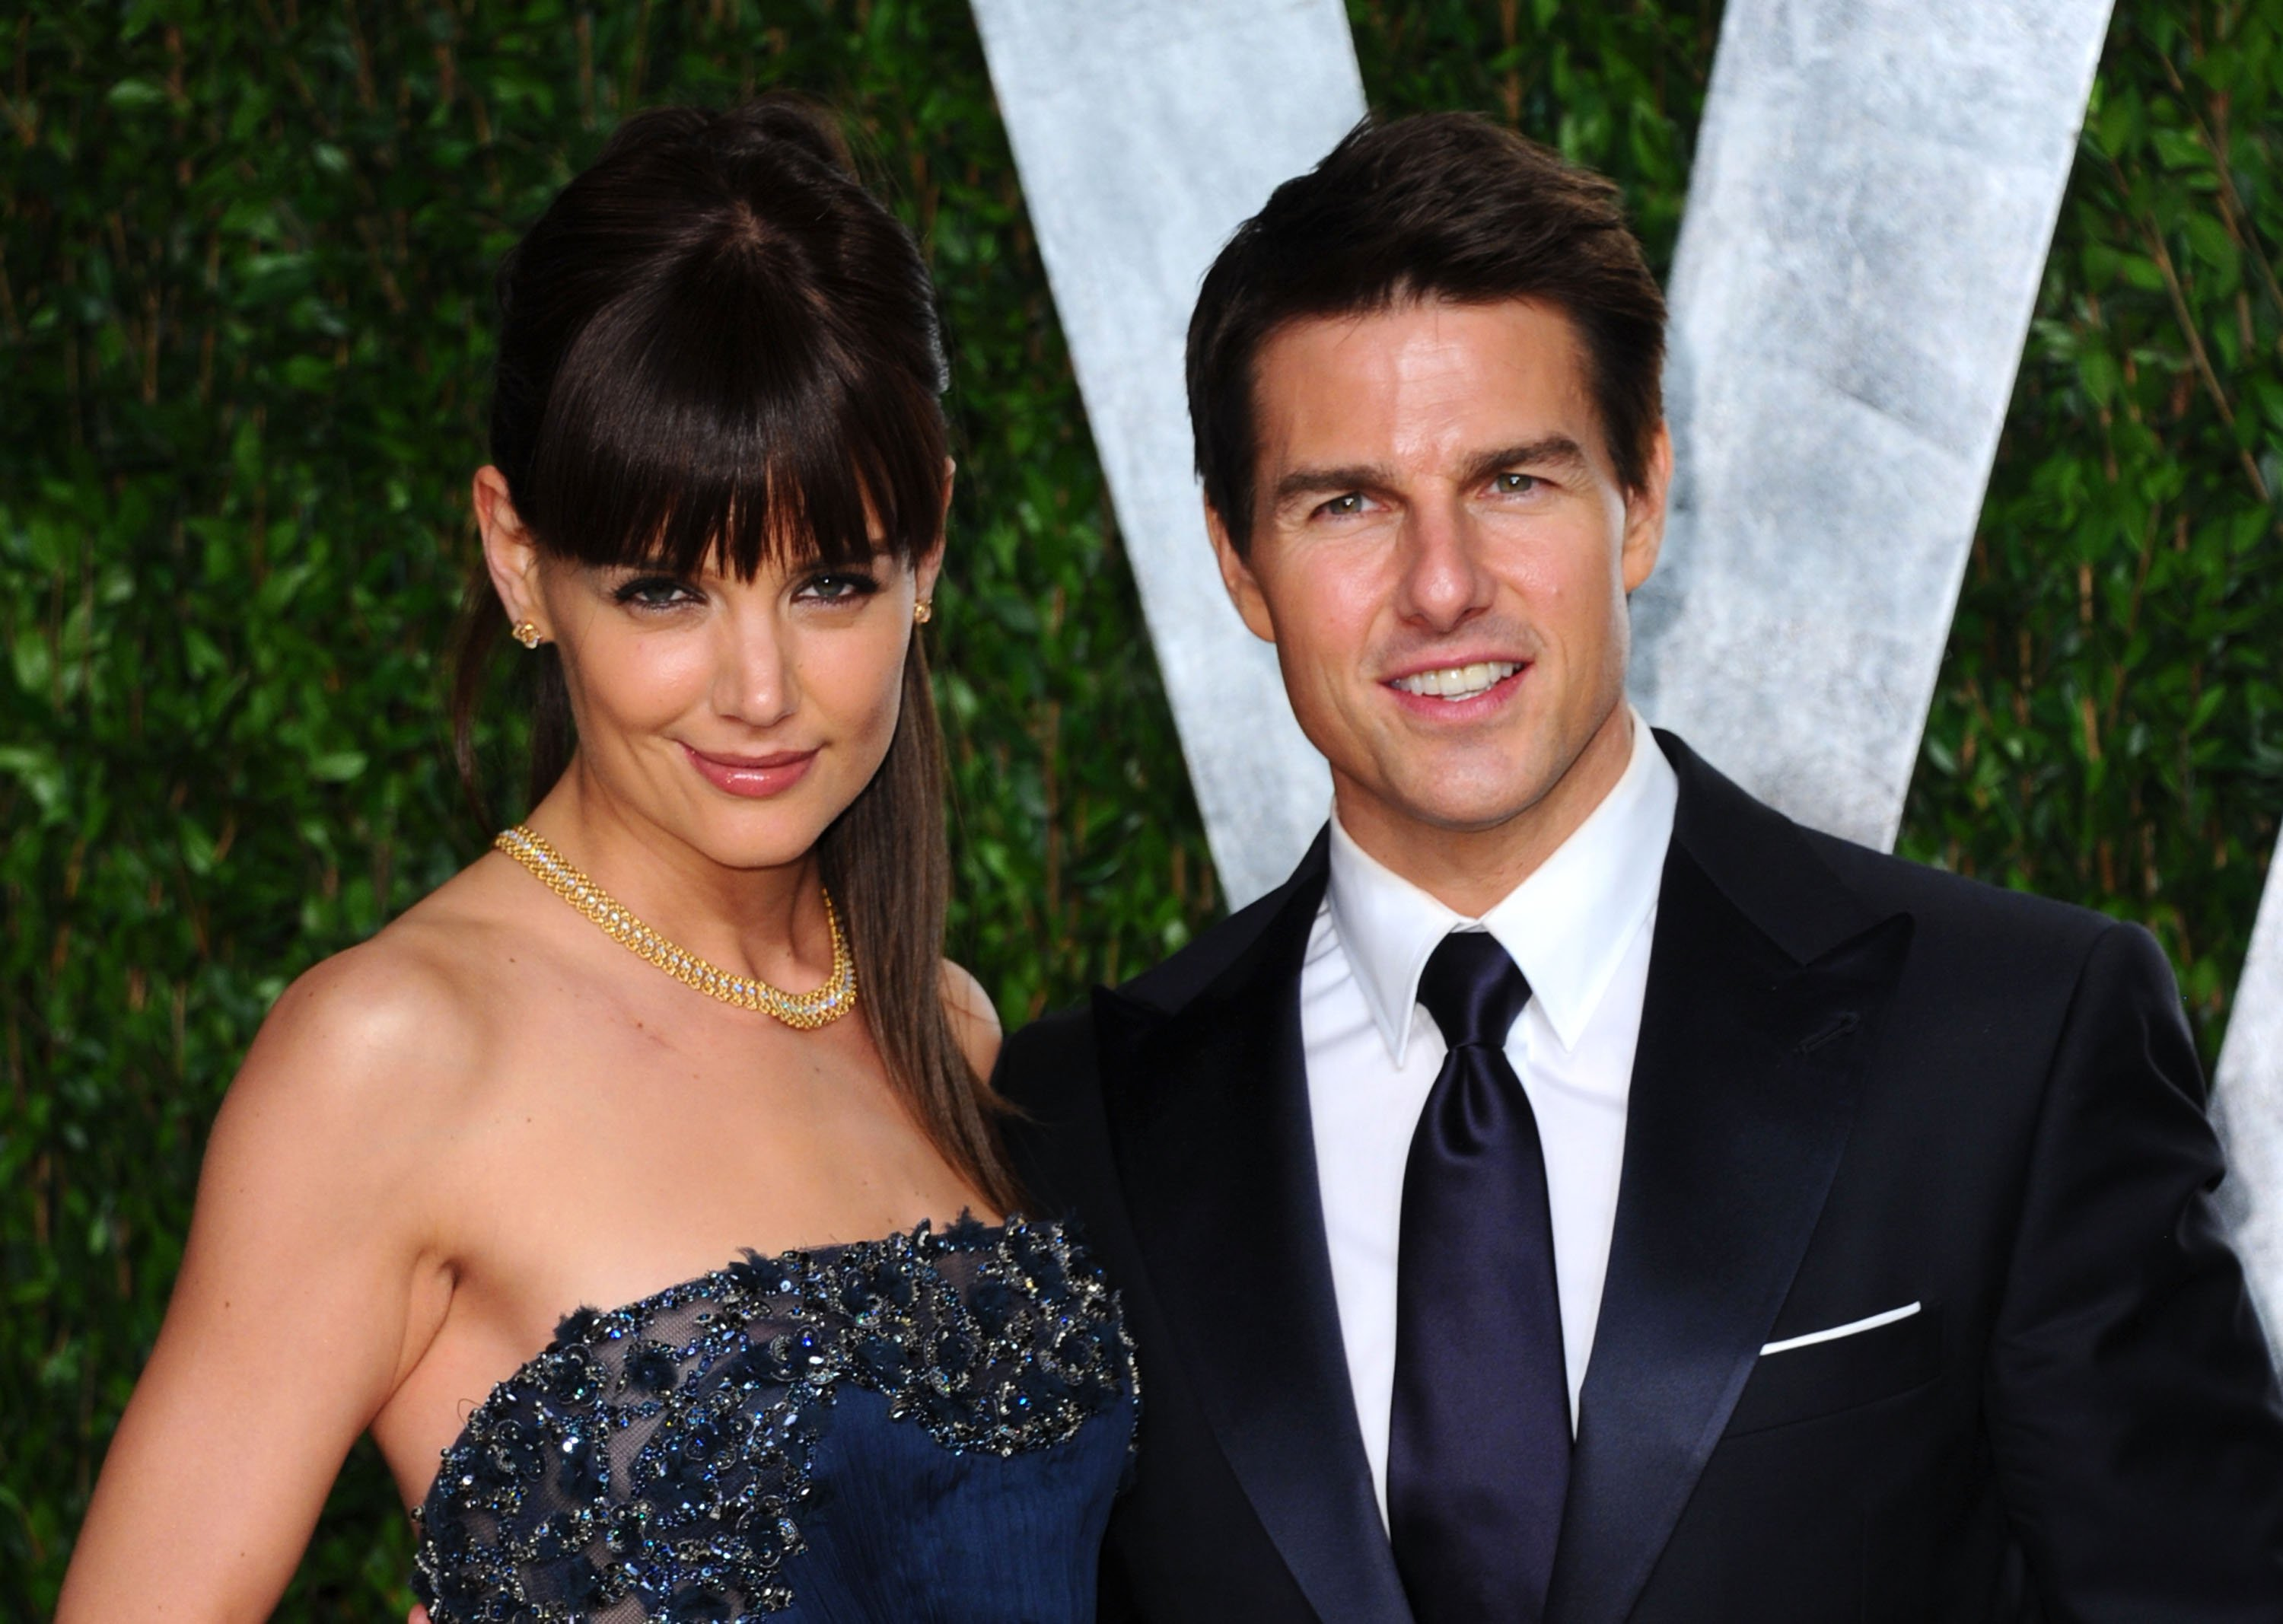 Katie Holmes and Tom Cruise arrives at the 2012 Vanity Fair Oscar Party on February 26, 2012. | Photo: GettyImages